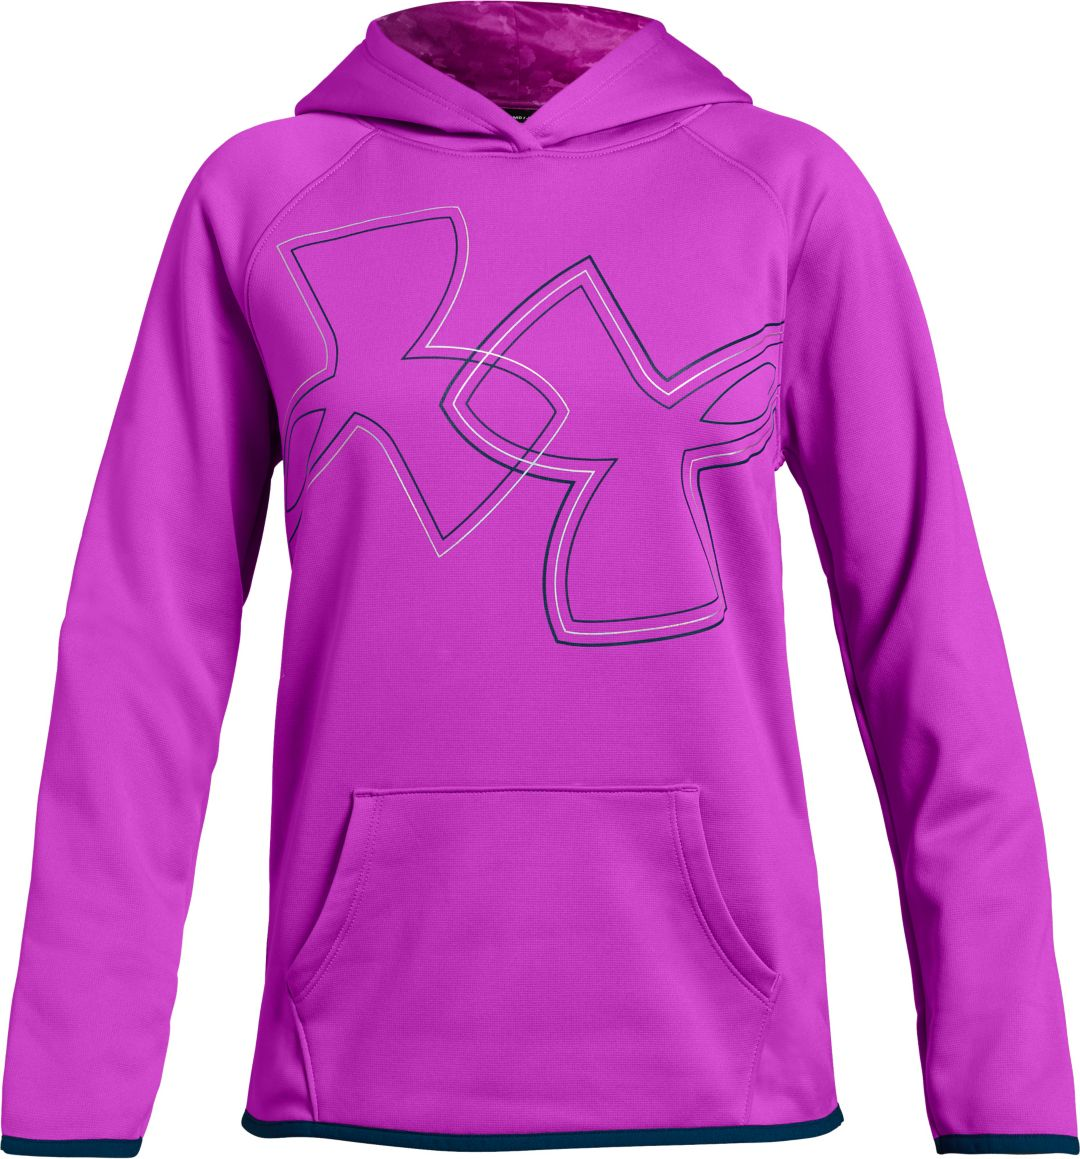 db85bf0a Under Armour Girls' Armour Fleece Dual Logo Graphic Hoodie